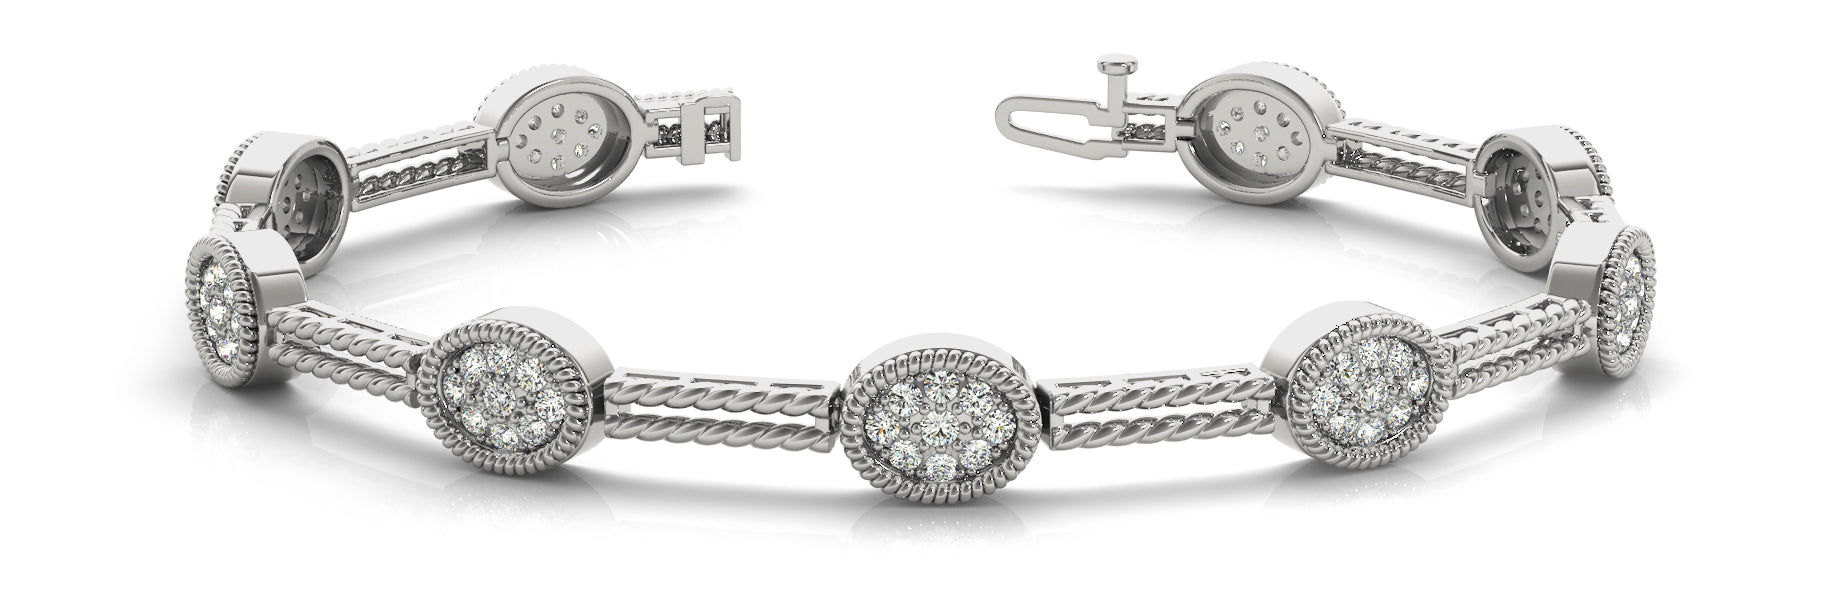 Fancy Diamond Bracelet Ladies 1.91ct tw - 14kt White Gold